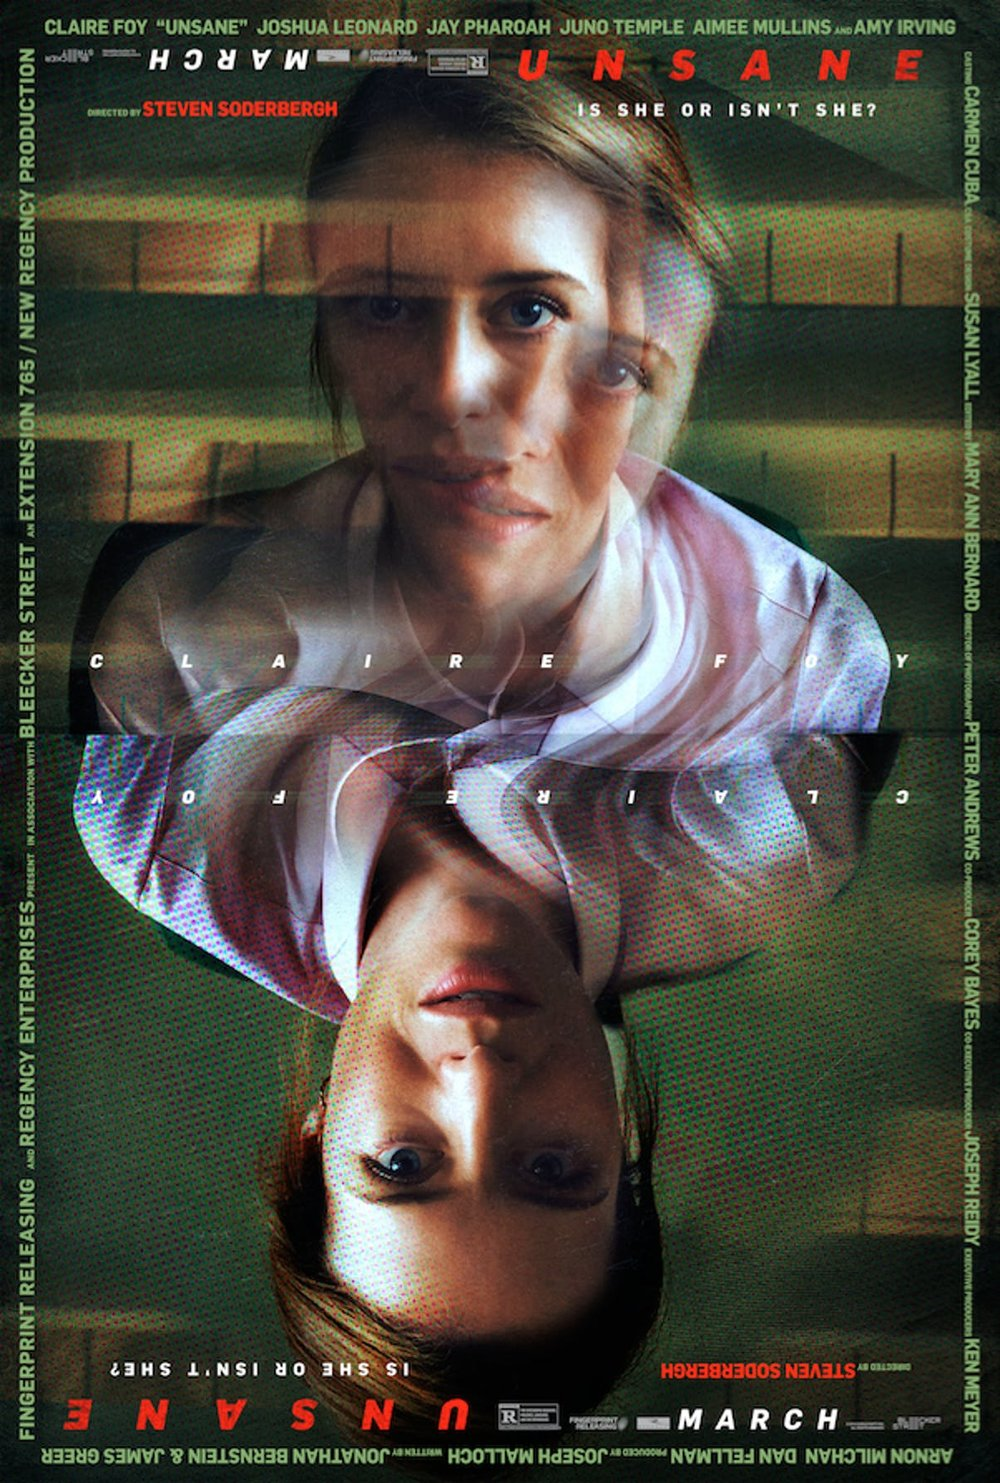 the-poster-for-unsane-released-on-monday.png.jpeg